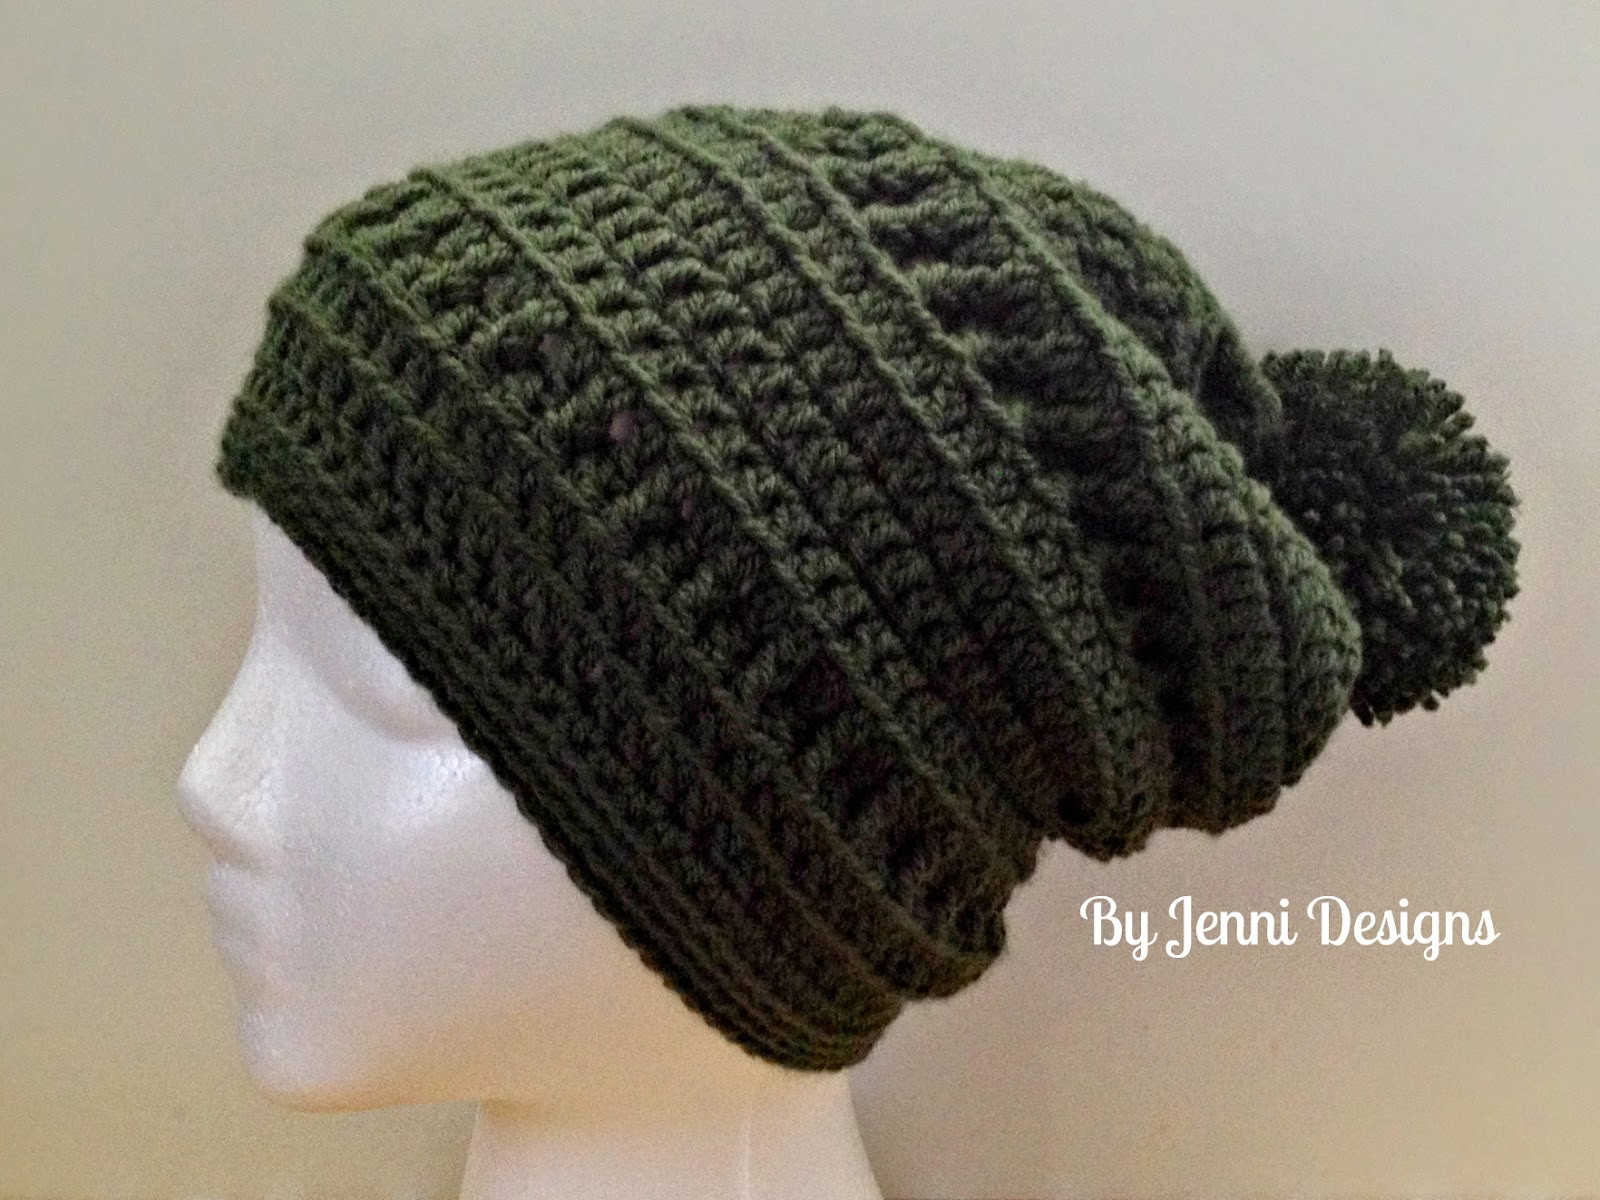 Inspirational Beanie Hats to Crochet Free Patterns Crochet Beanie Tutorial Of Attractive 48 Pics Crochet Beanie Tutorial